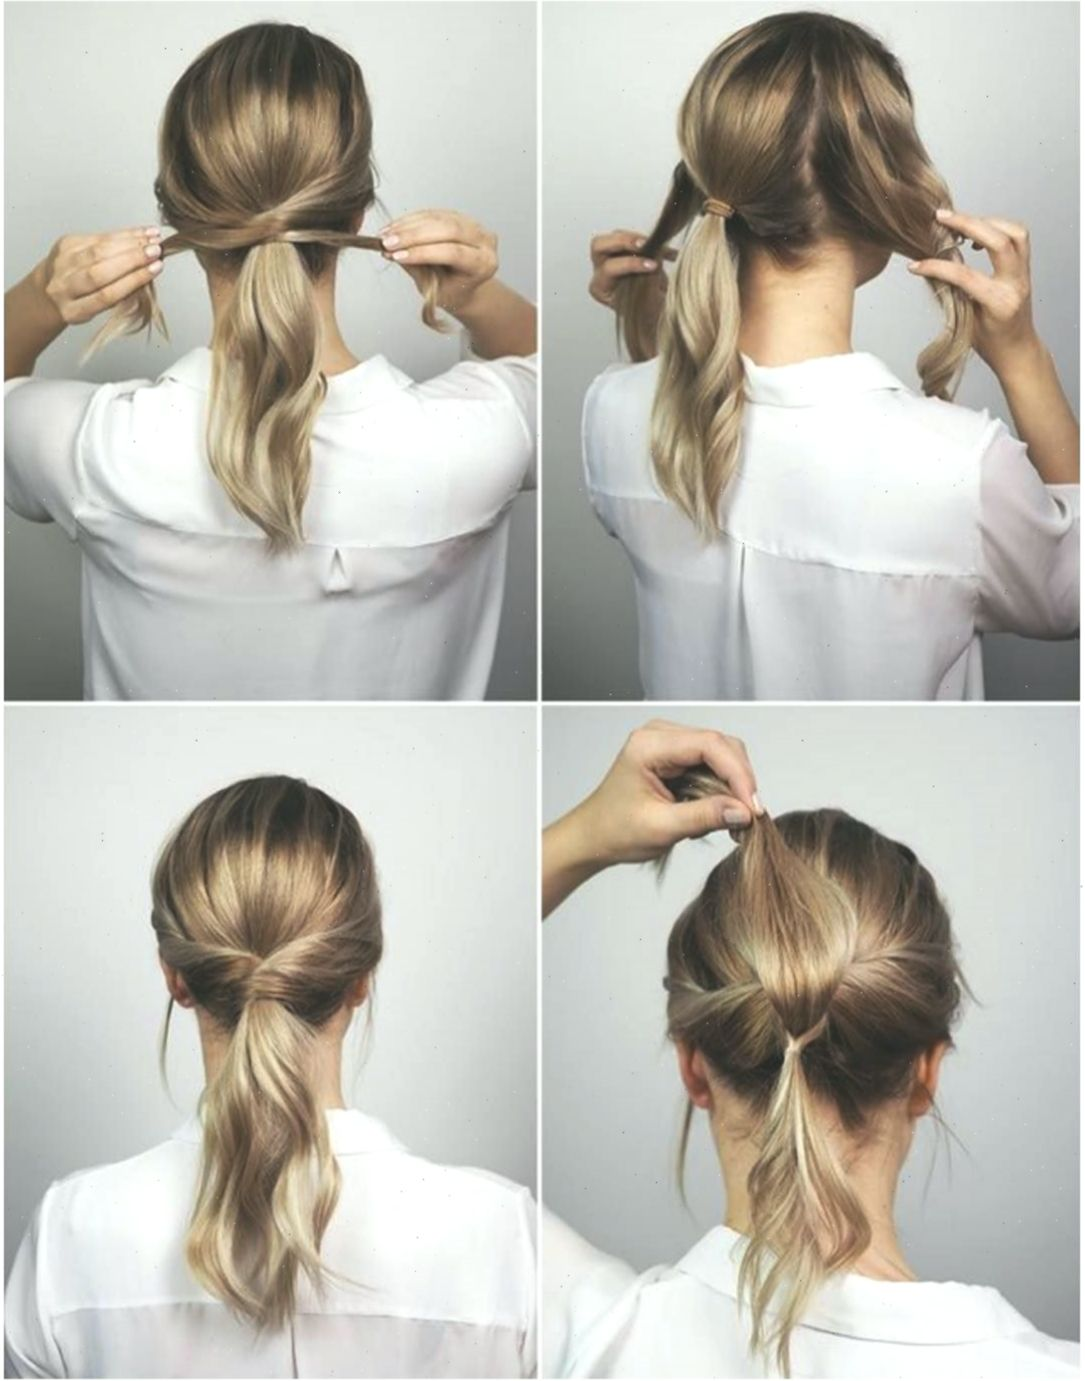 10 Easy Hairstyles For Long Hair To Do At Home Step By Step Hey Cinderella Einfachefrisuren Easyhairstylesfor Office Hairstyles Hair Styles Easy Hairstyles